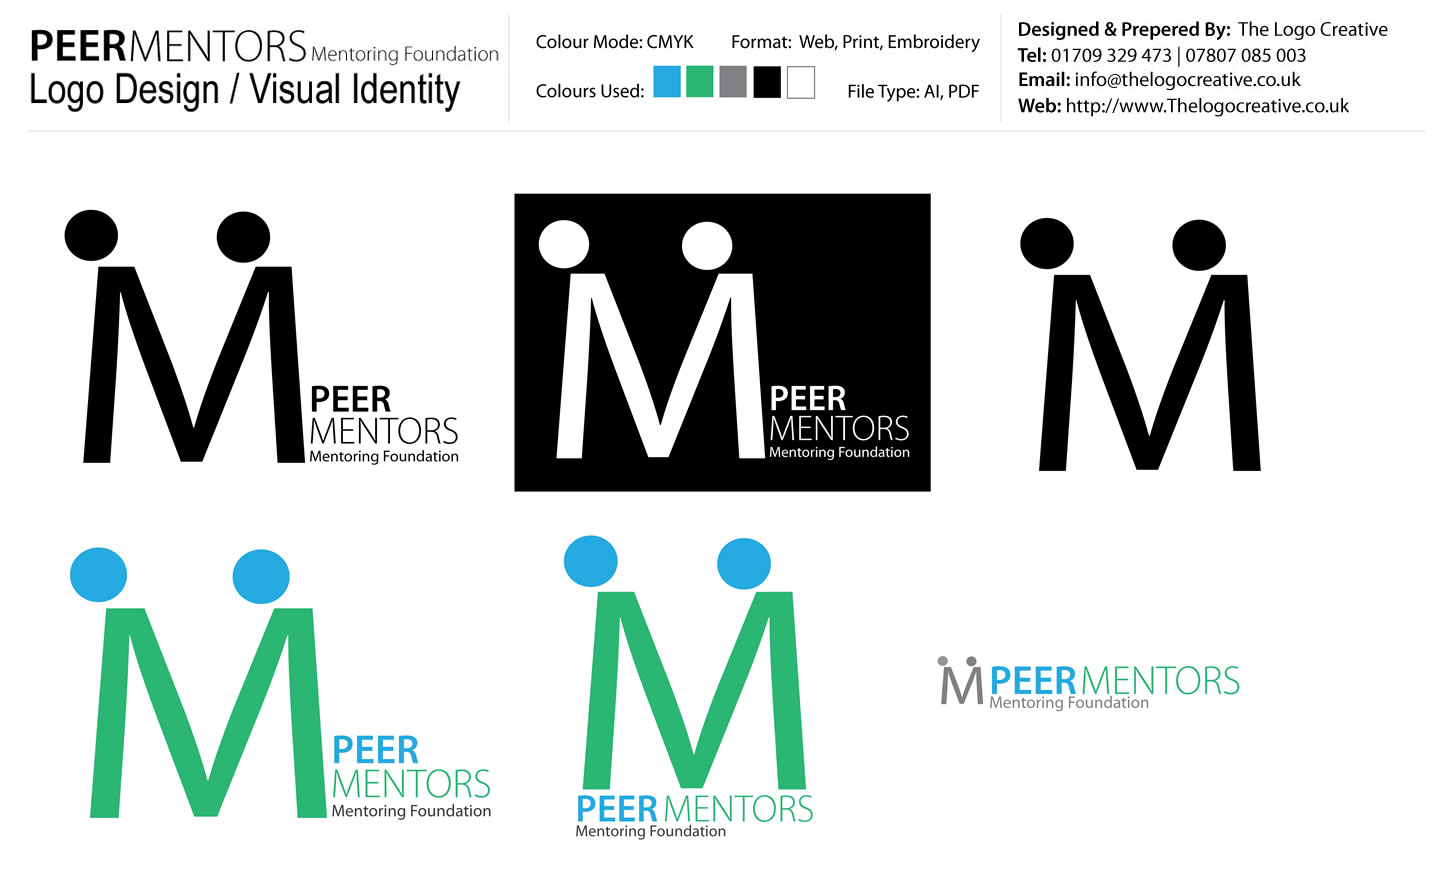 Peer Mentors Logo Design Presentation_TLC